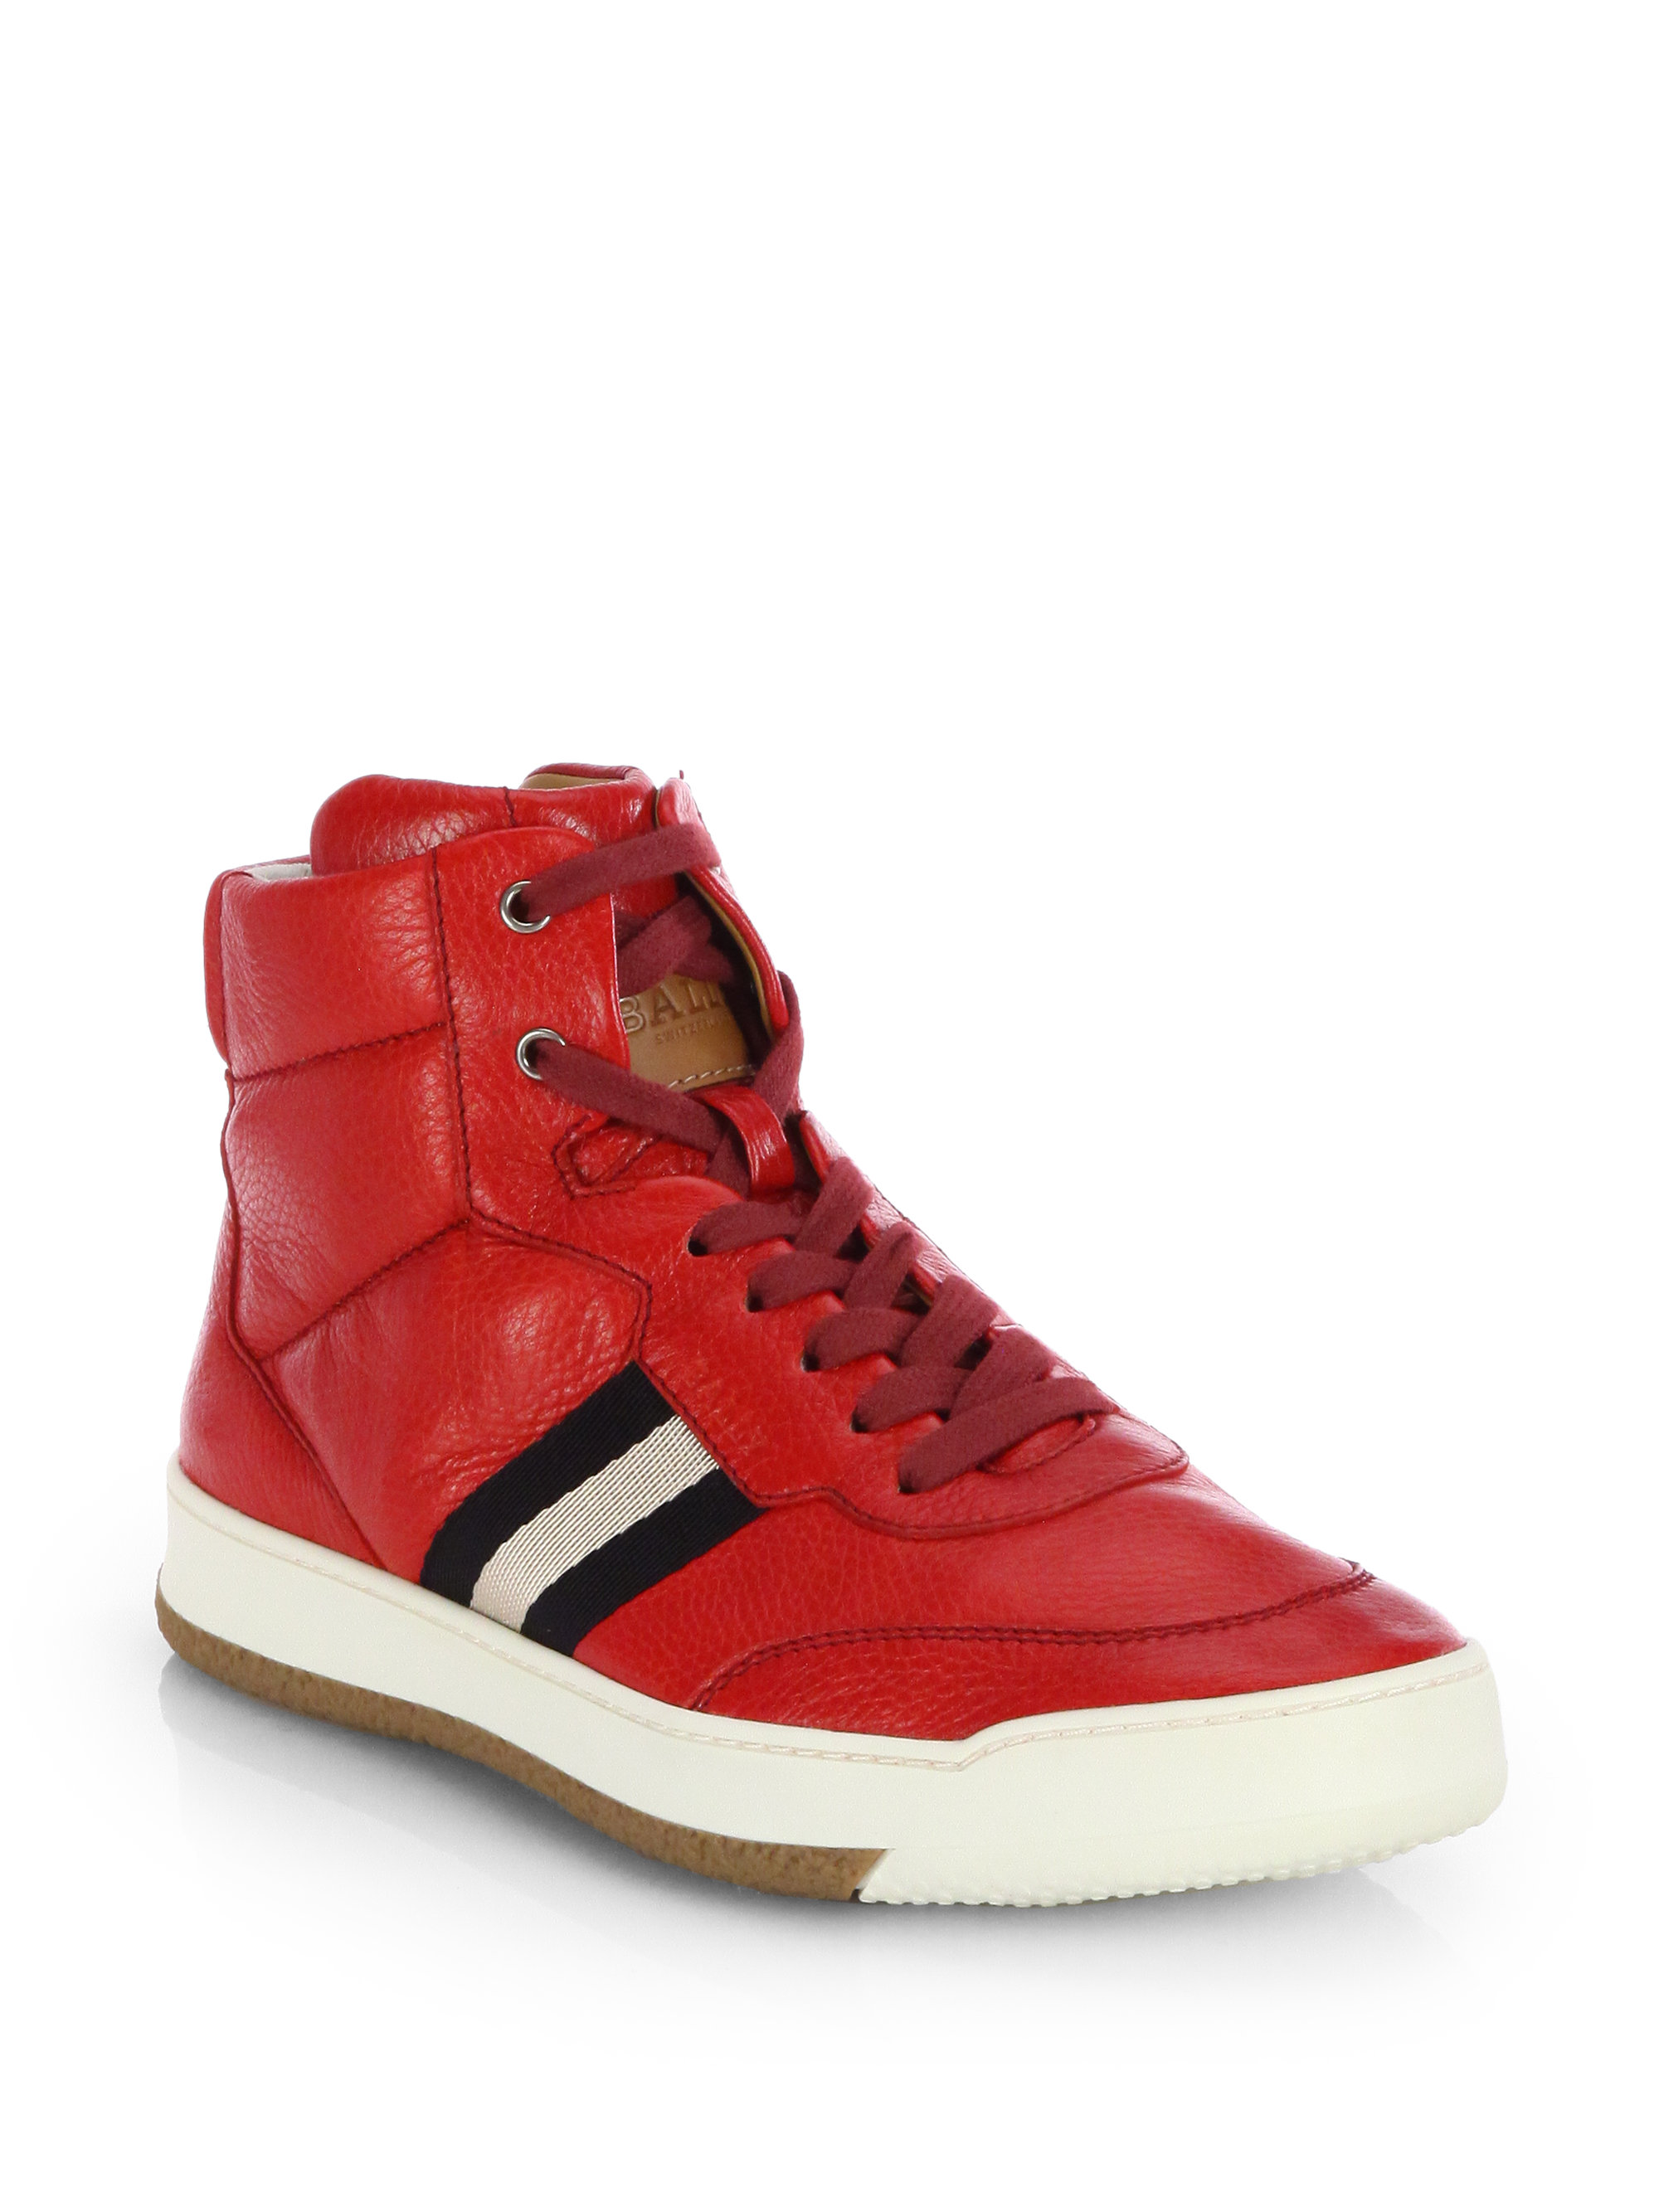 Bally Leather Hightop Sneakers In Red For Men Bally Red